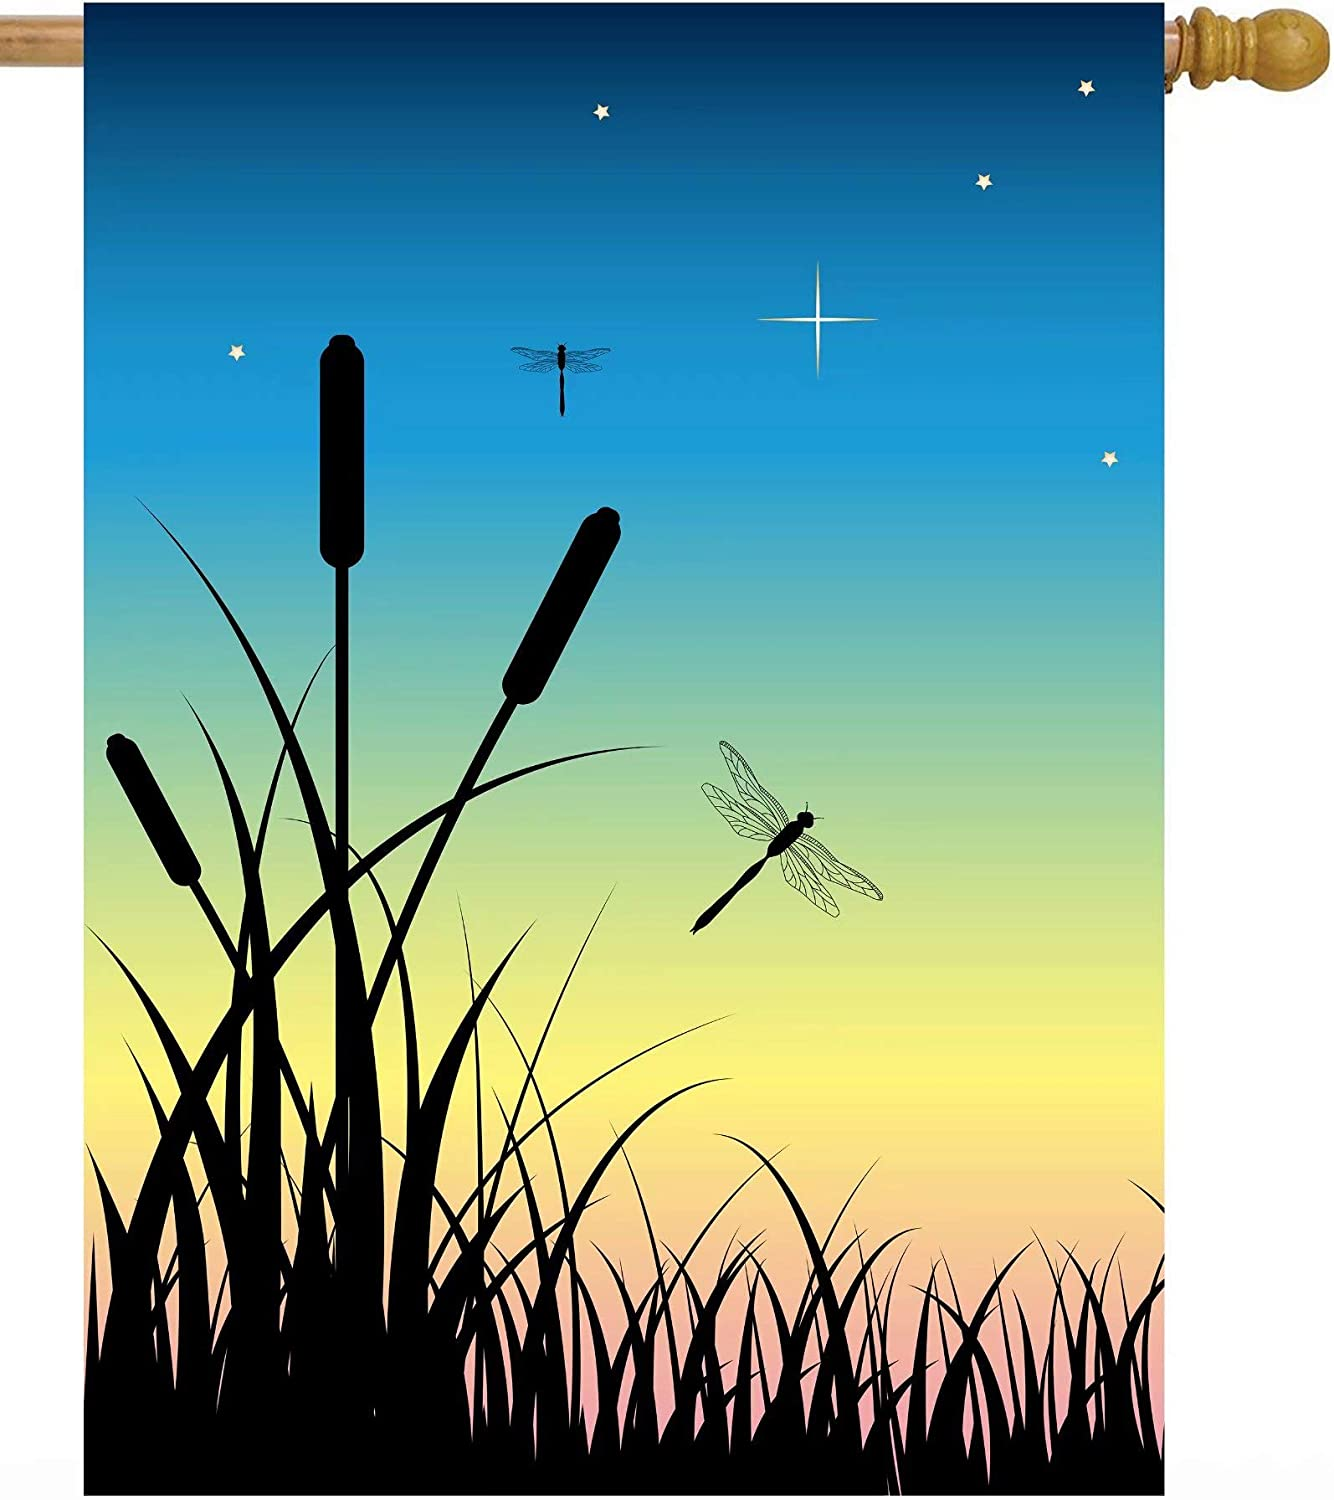 Pickako Summer Spring Scenery Dragonfly Night Sunset Over The Swamp House Flag 28 x 40 Inch, Double Sided Large Garden Yard Welcome Flags Banners for Home Lawn Patio Outdoor Decor